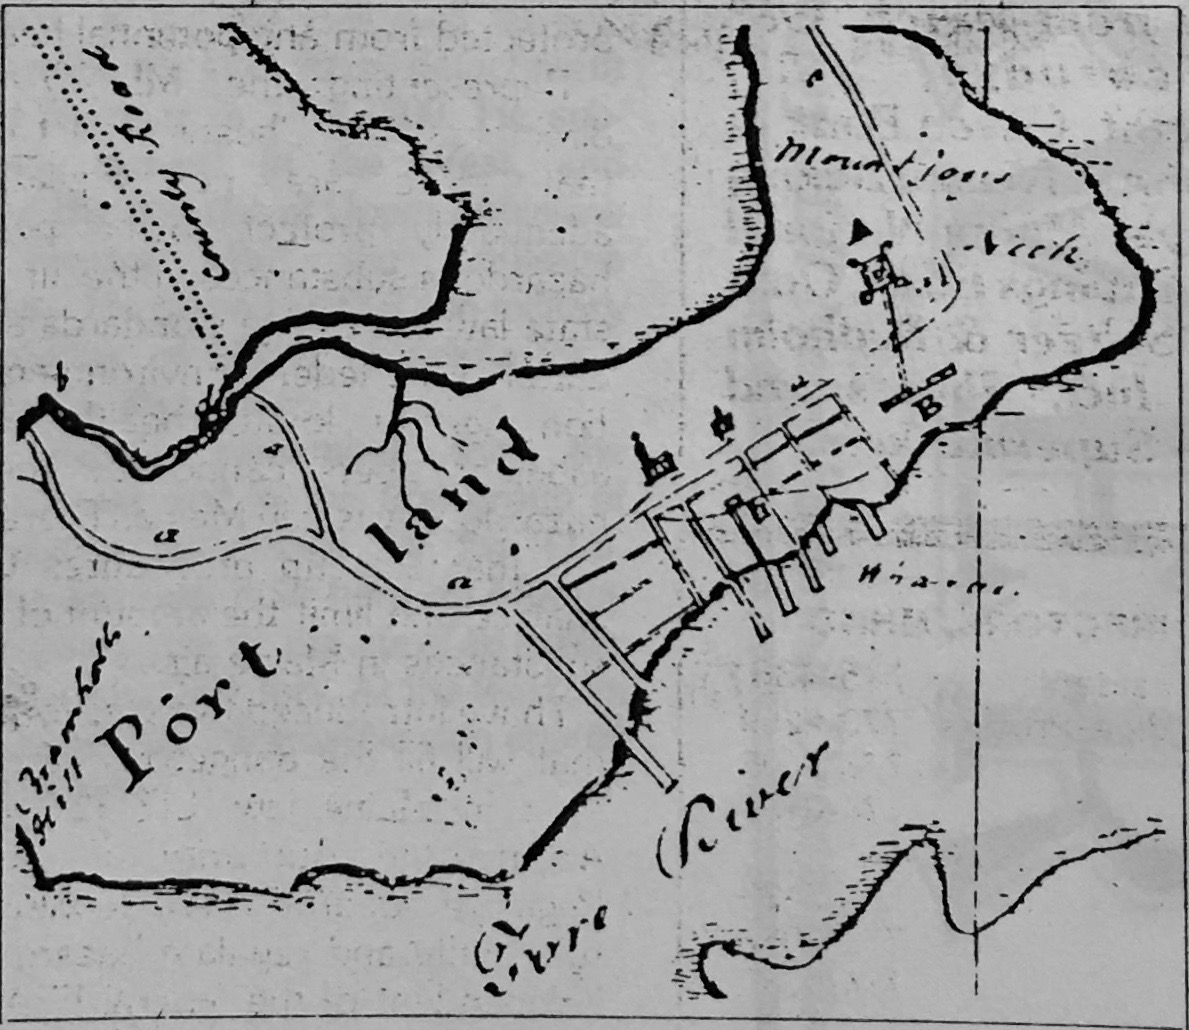 1795 Map of Portland (portion). Legend reads: A to B — Fort with Block House. Covered way from Fort to Battery. Battery of 12 Guns. (Click to enlarge.)